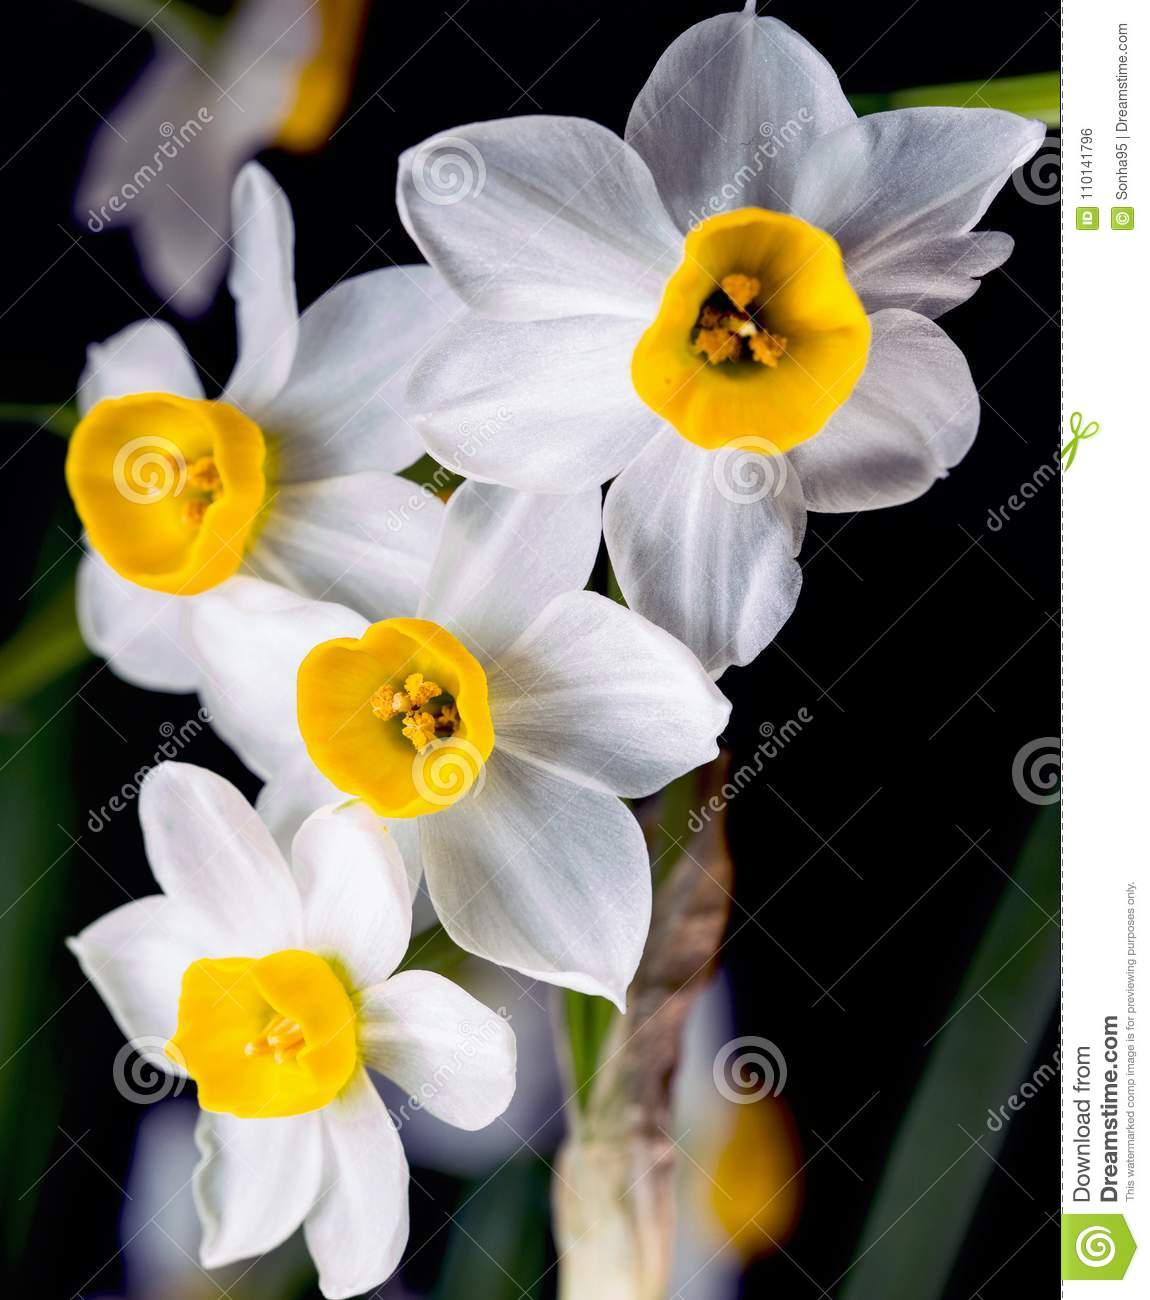 Narcissus The Daffodils Are Small White And Have A Pleasant Aroma